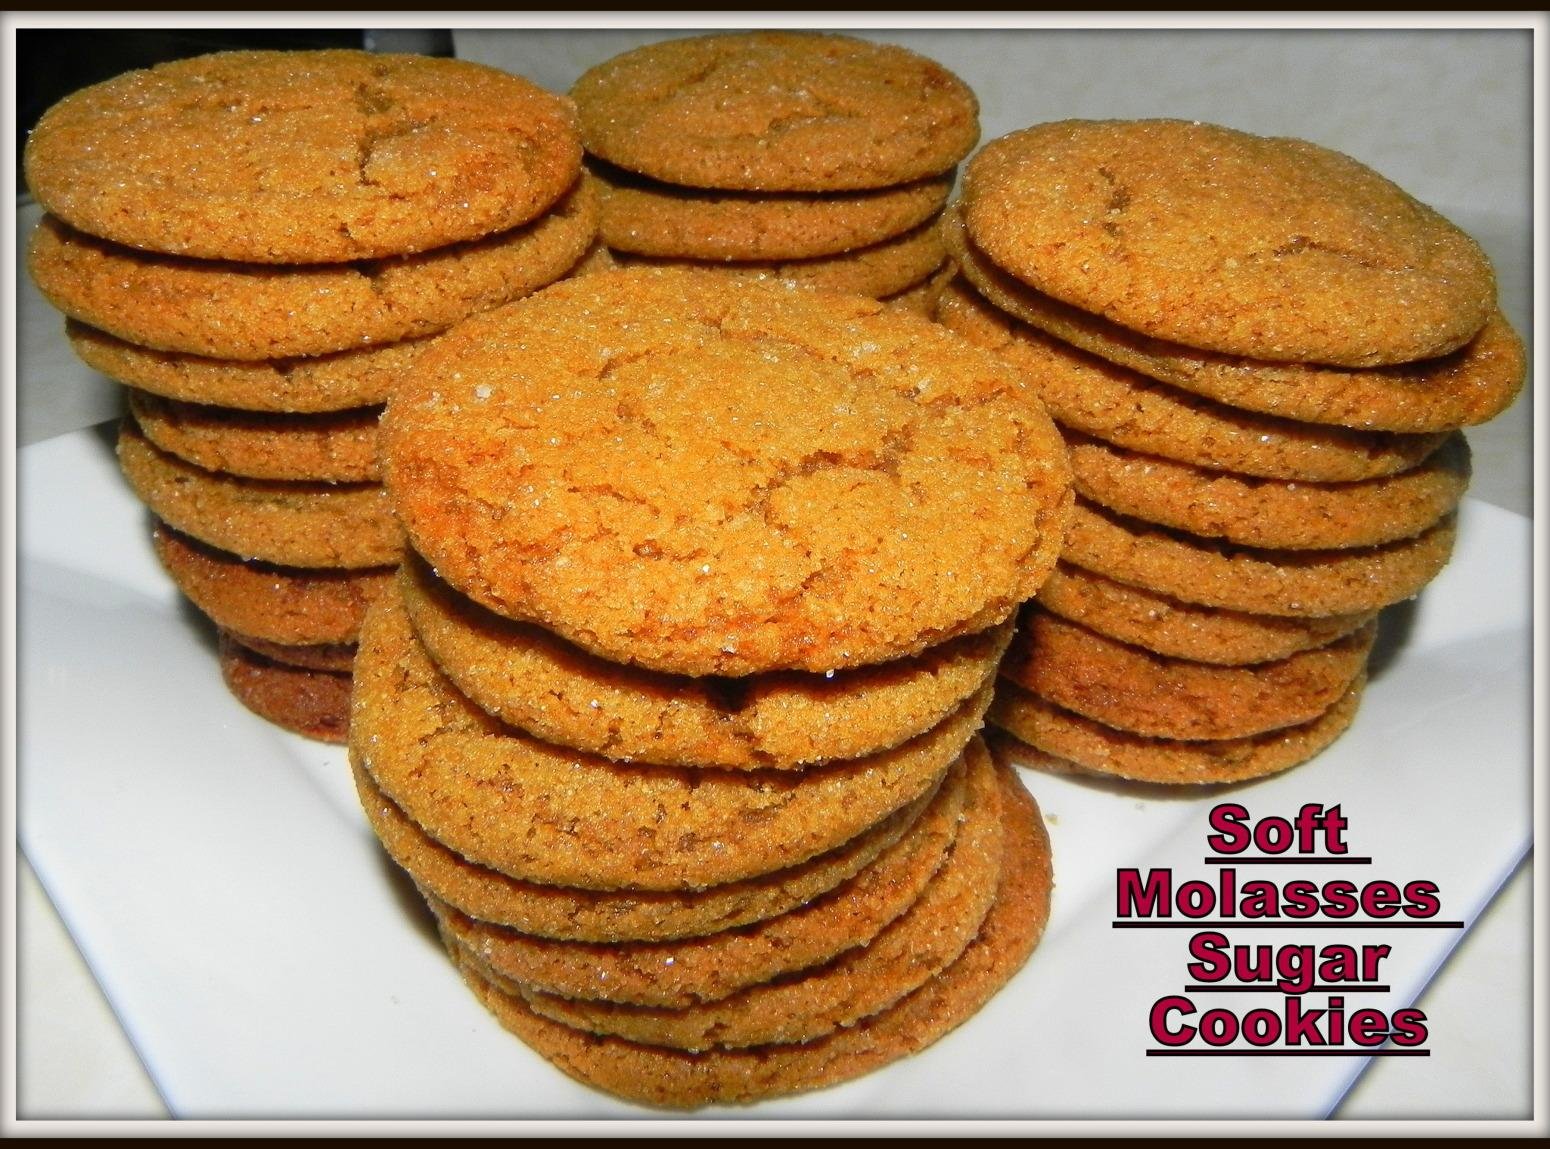 Soft Molasses Sugar Cookies Recipe